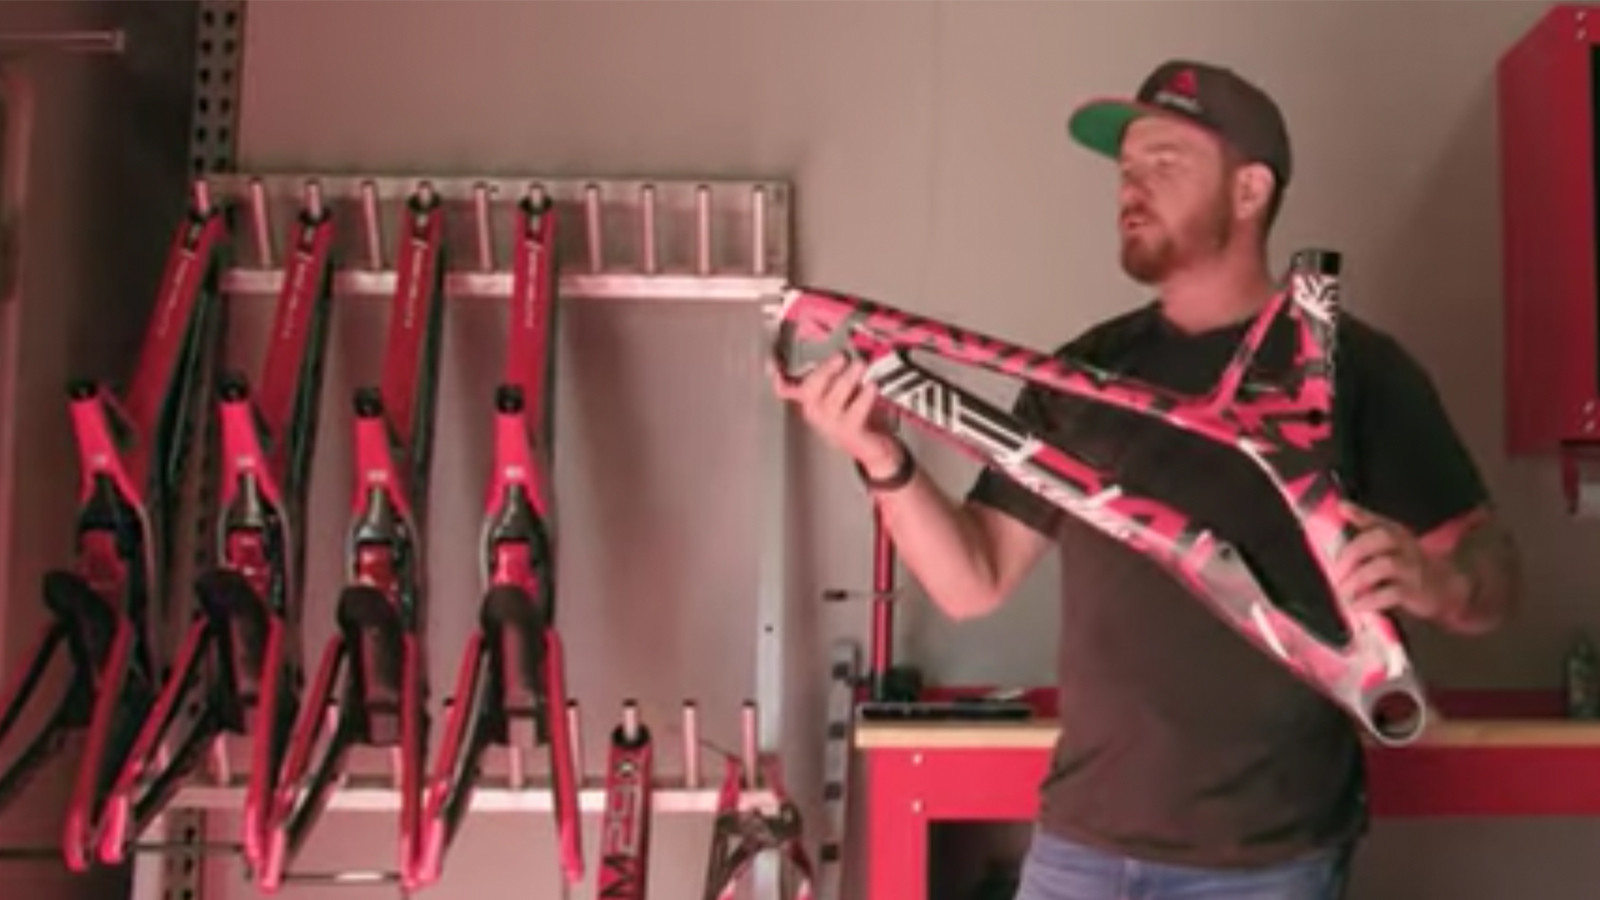 TRP Presents John Hall's Outside the Toolbox Episode 3: Shop Talk